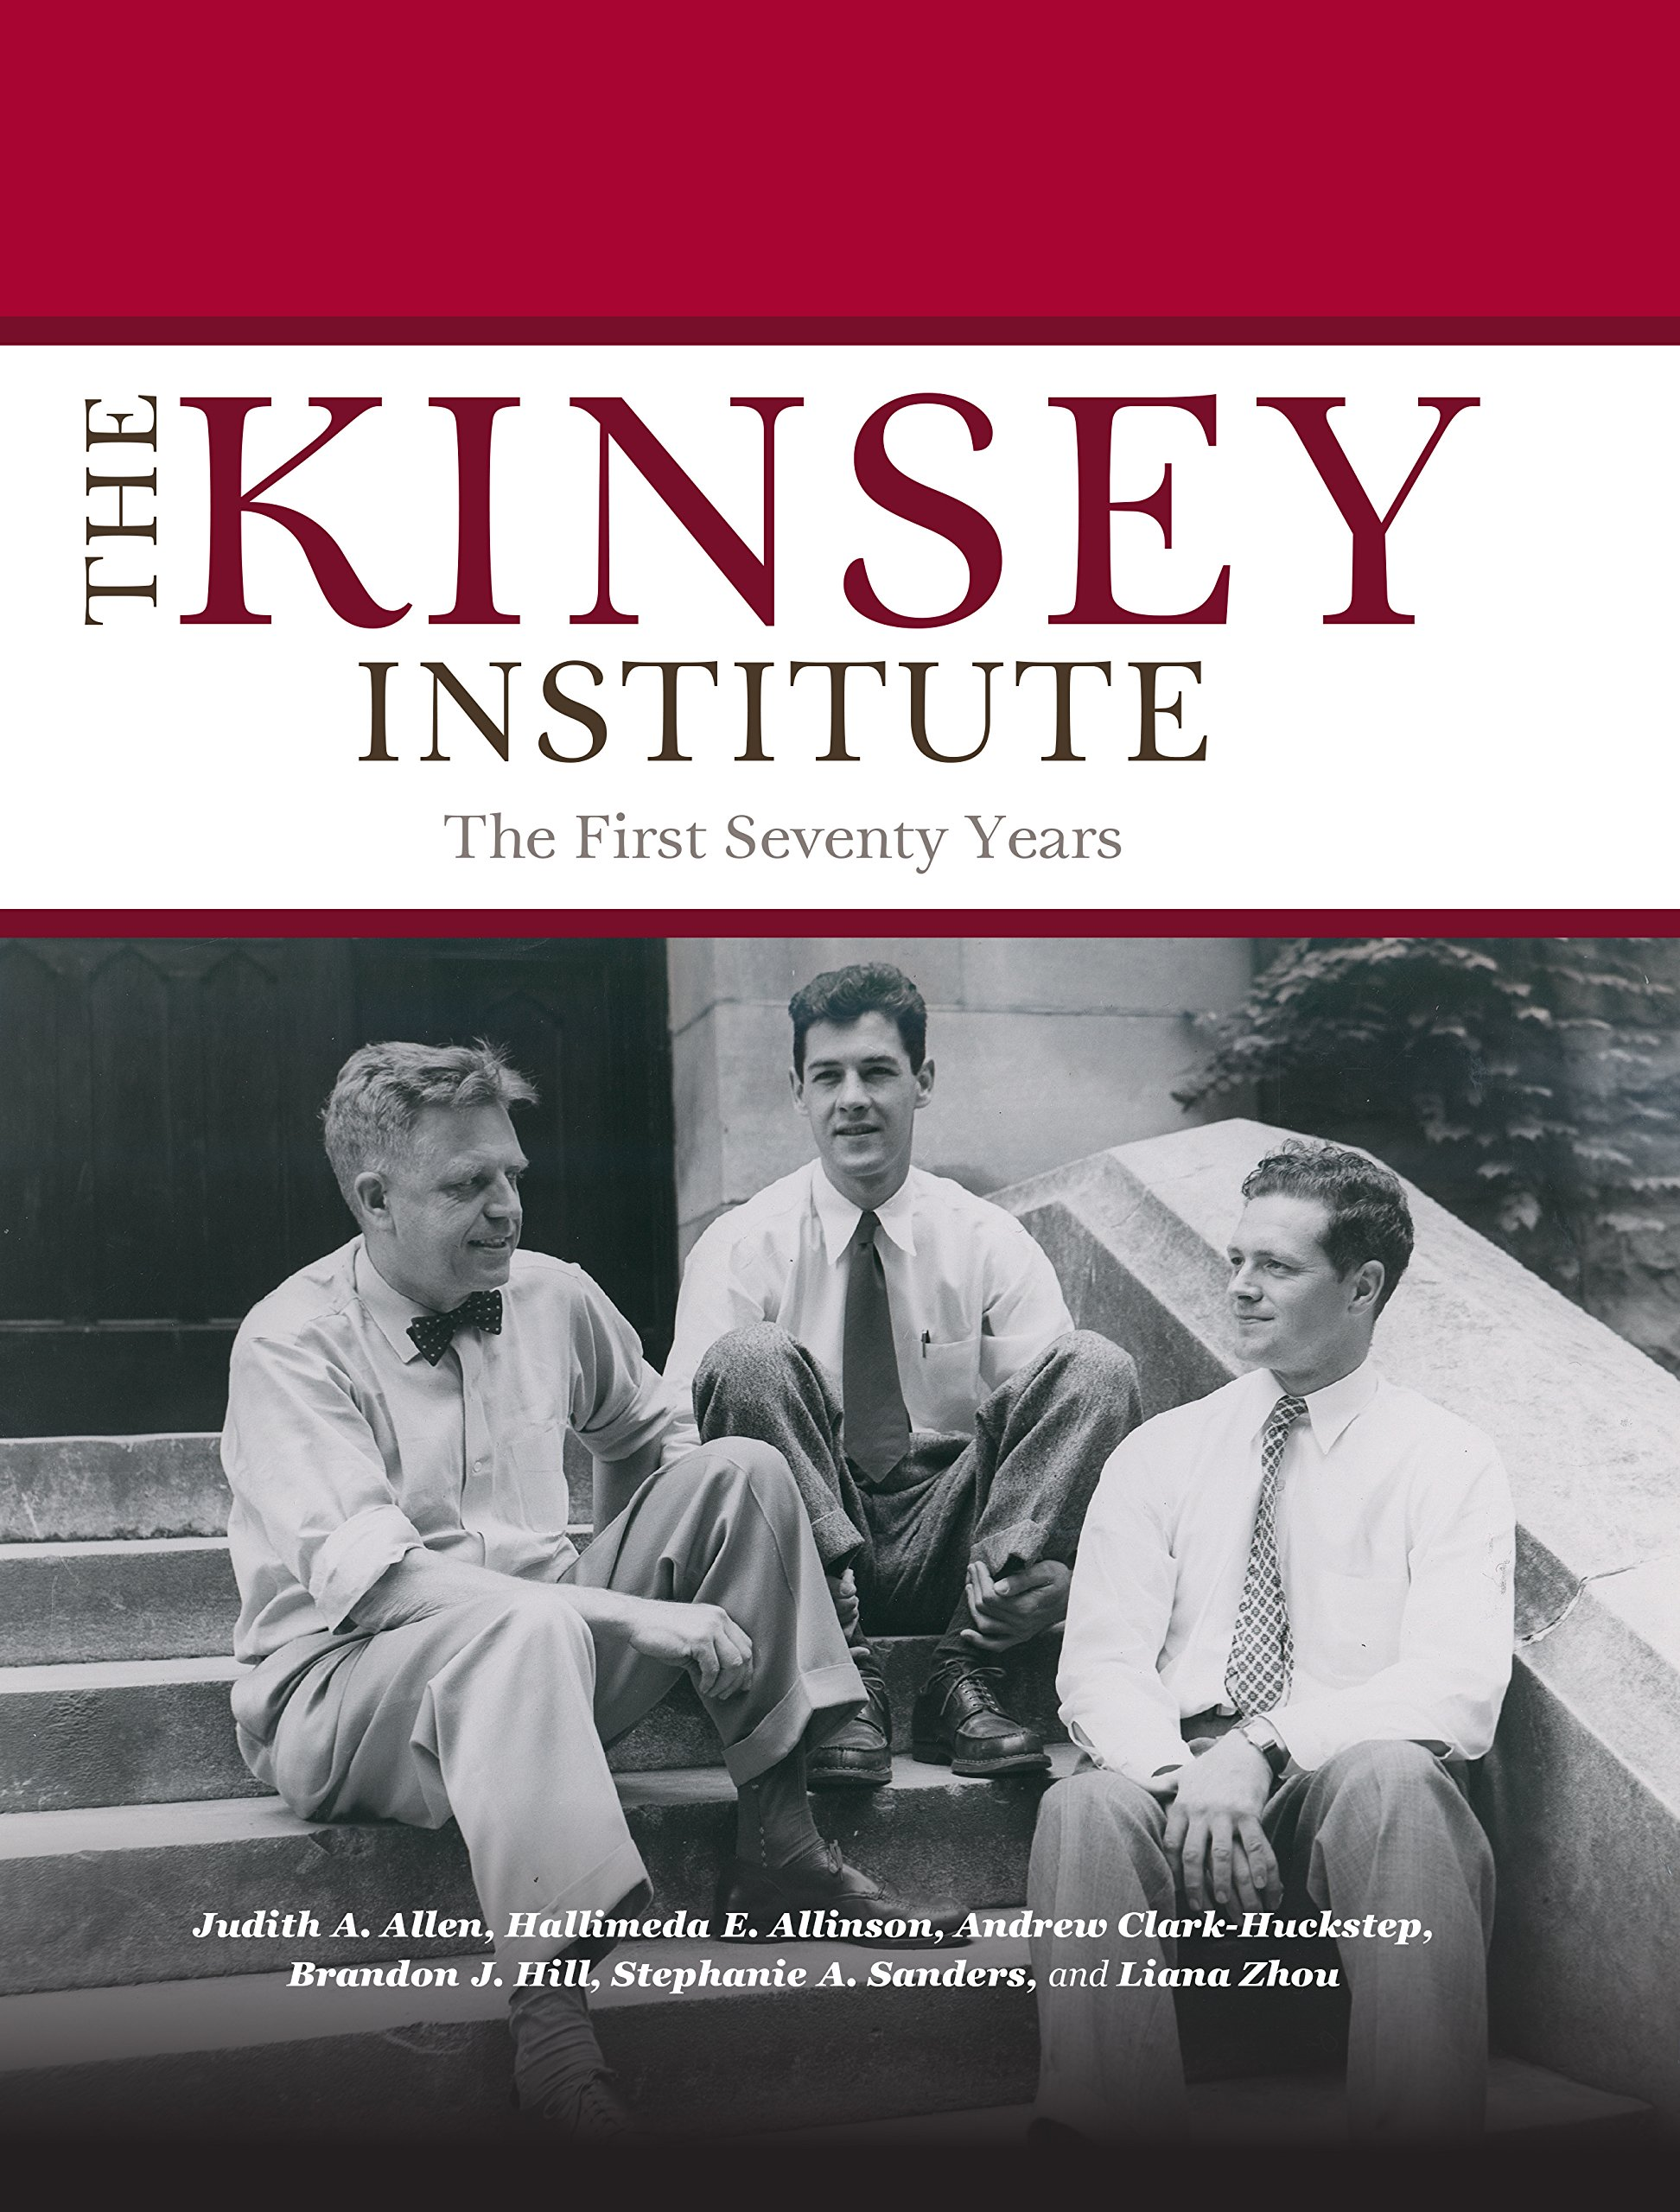 Download The Kinsey Institute: The First Seventy Years (Well House Books) ebook